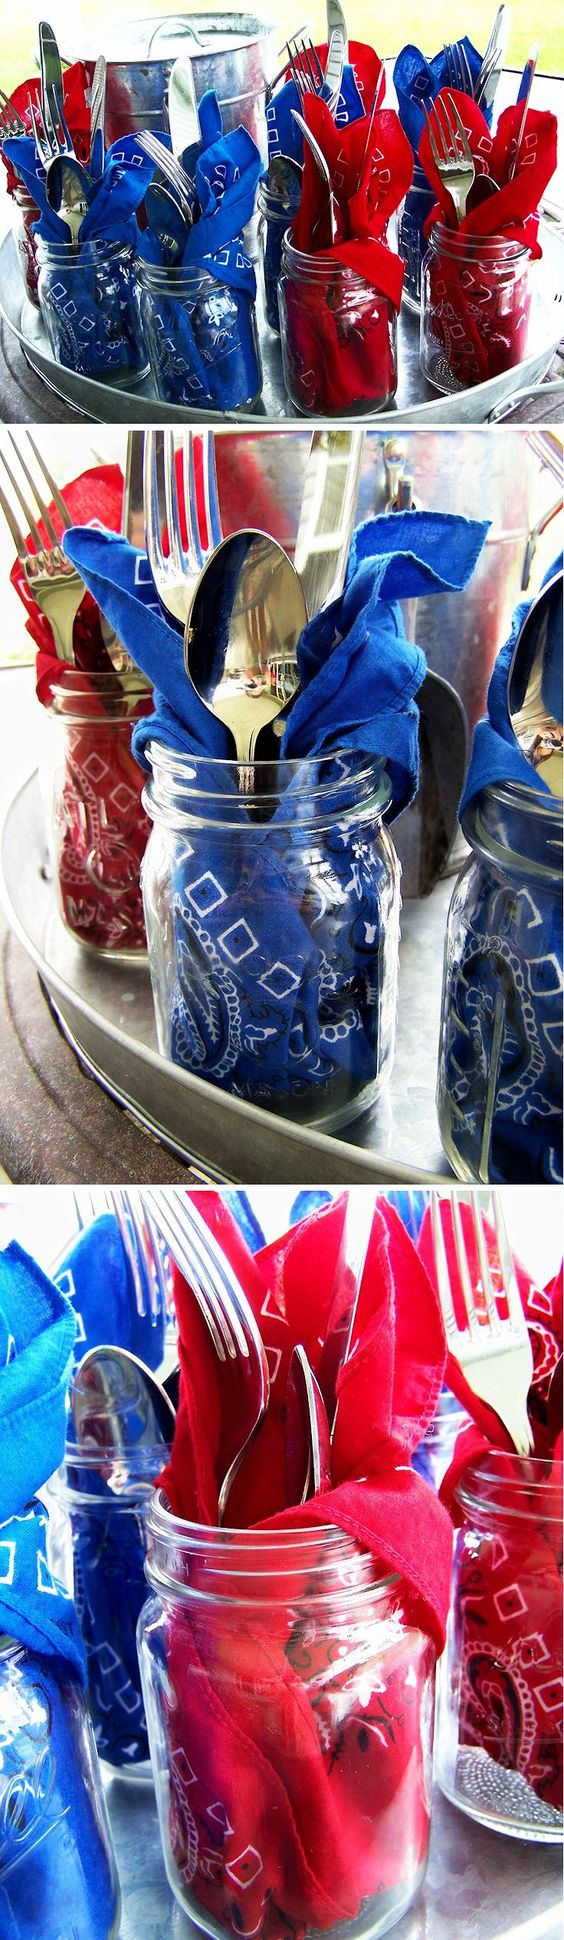 Patriotic Bandana Mason Jars ~ LOVE this idea! Everyone will have their own jar with a red, white or blue bandana napkin and silverware. Then they can fill up their mason jar with ice from the bucket and enjoy iced tea or lemonade. Perfect for Memorial Day and the 4th of July! | diy summer party entertaining idea